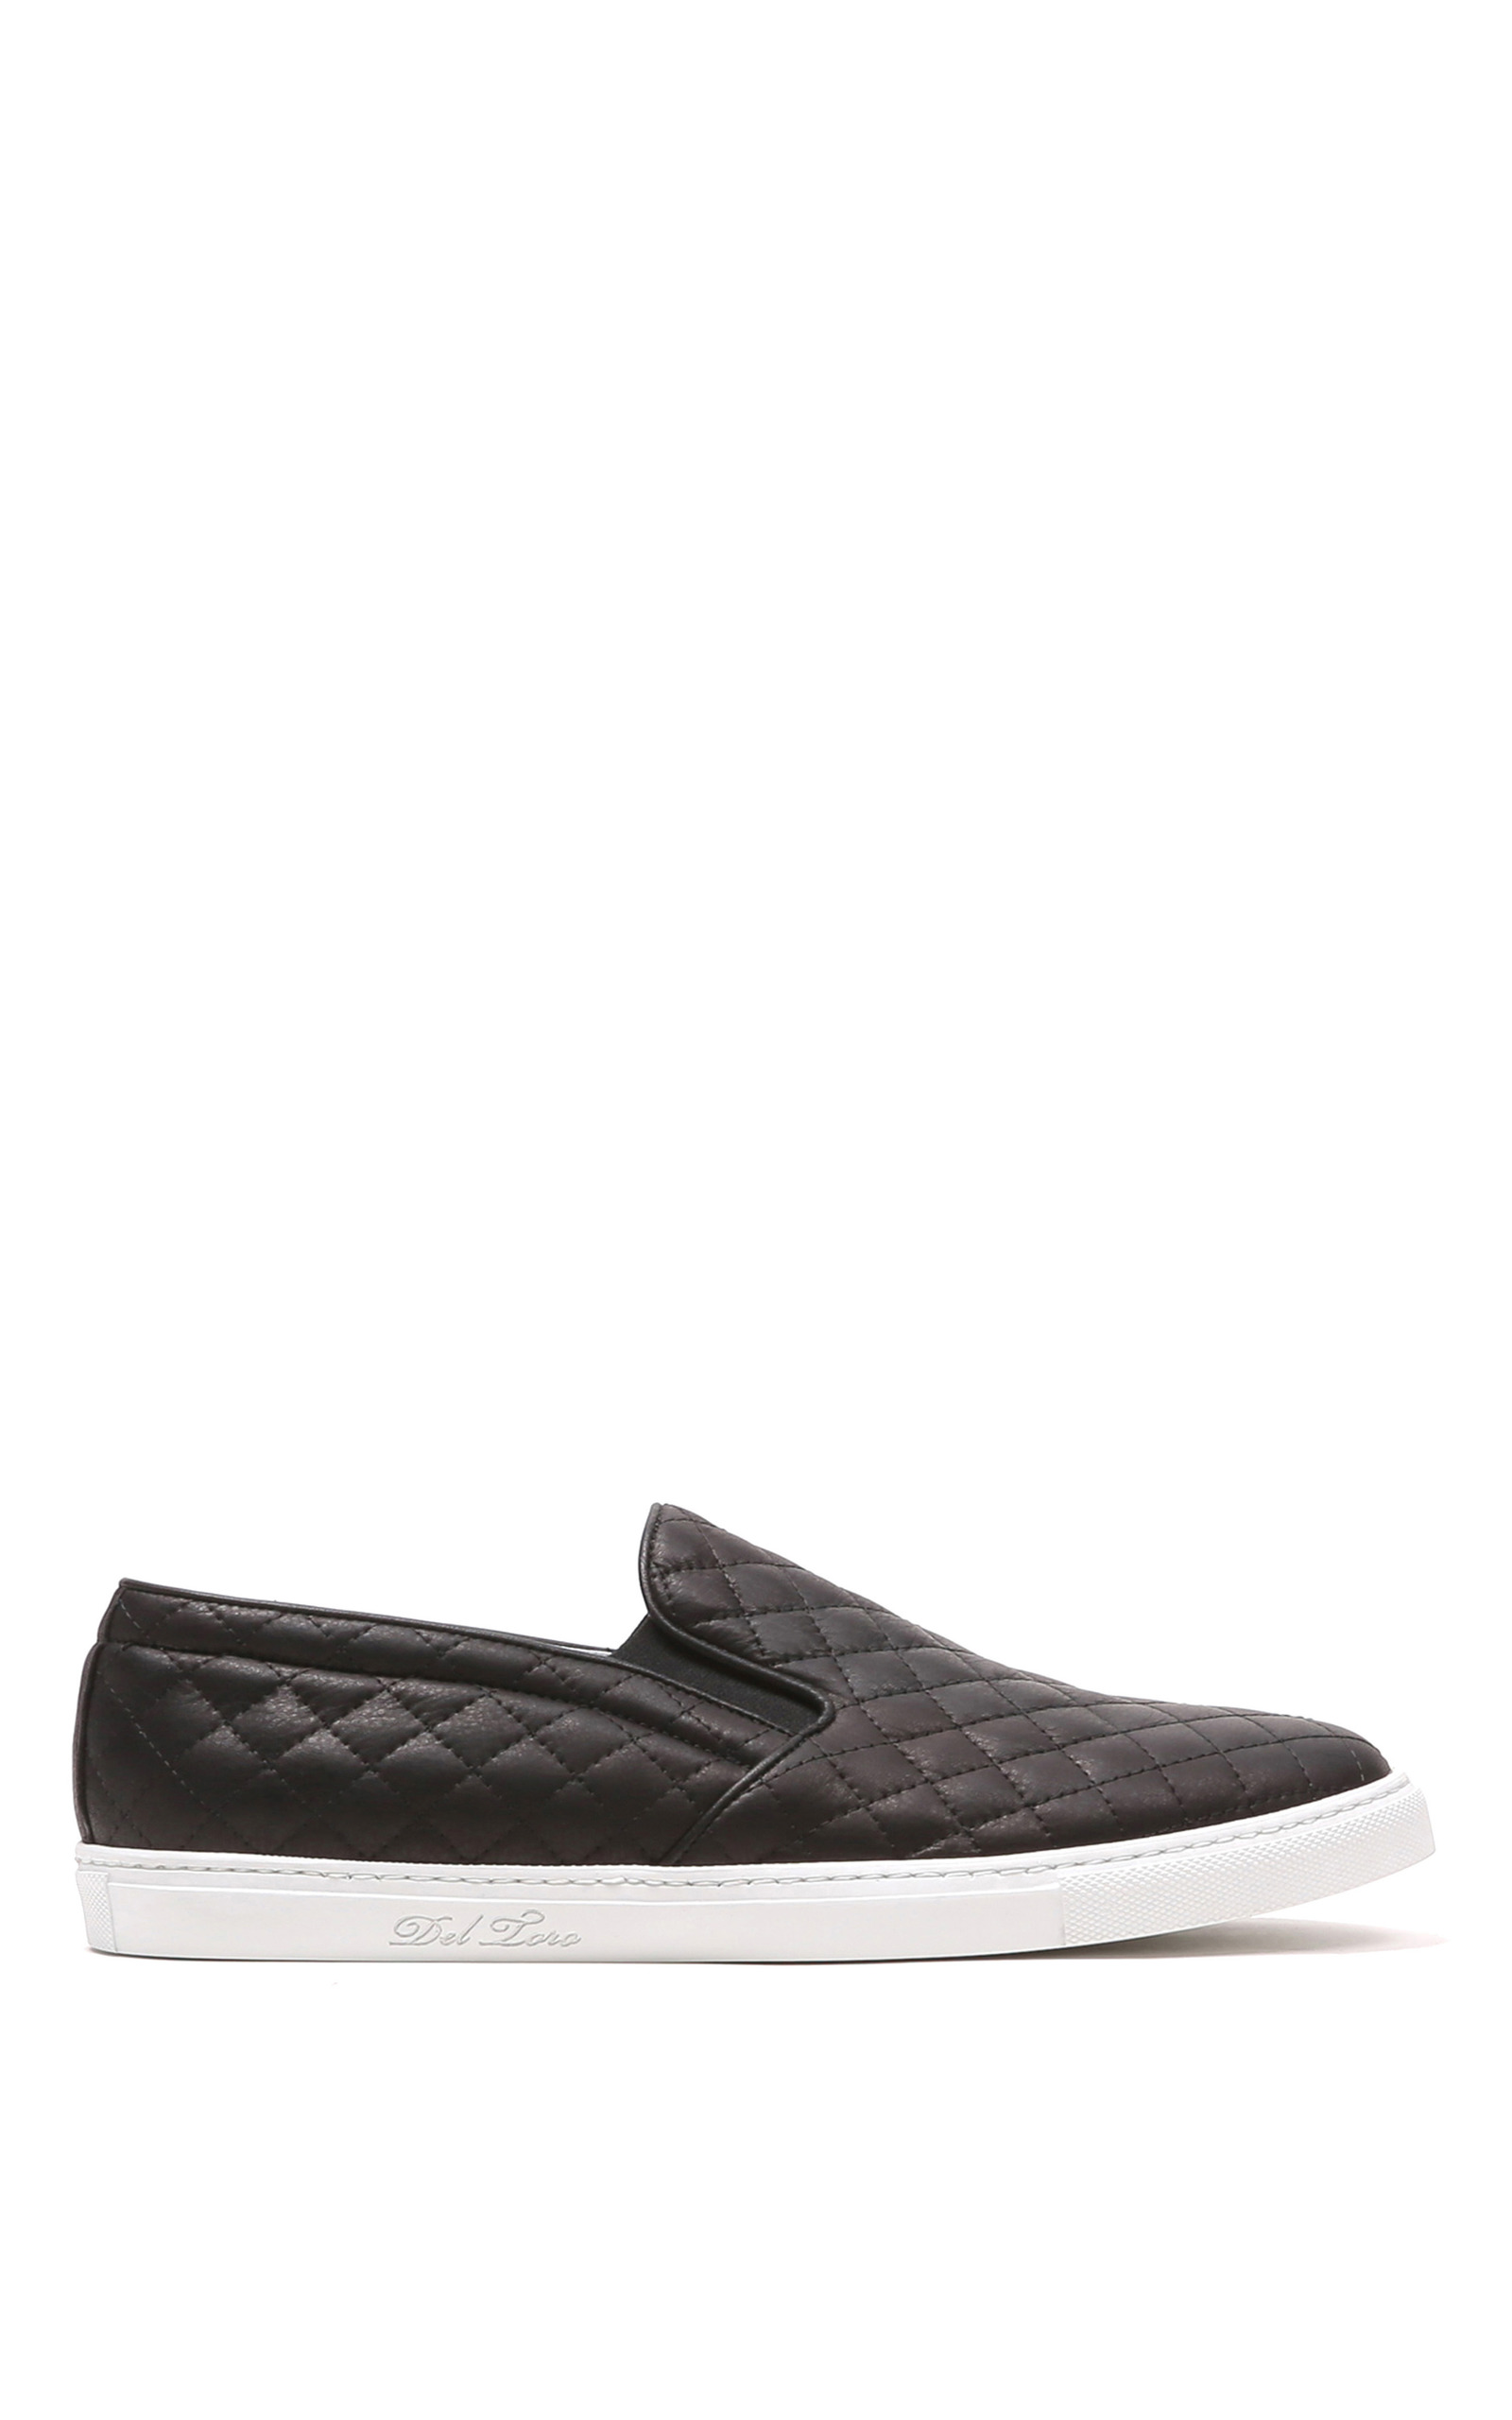 Quilted slip-on sneaker featuring piped topline and elastic goring at each side. W Collection Slip on Fashion Sneakers White Sole Shoes Closed Toe. by W Collection. the perfect slip on sneaker with a quilted leather upper with Soho Shoes Women's Casual Lace up High Top Quilted Fashion Sneaker. by Soho Shoes. $